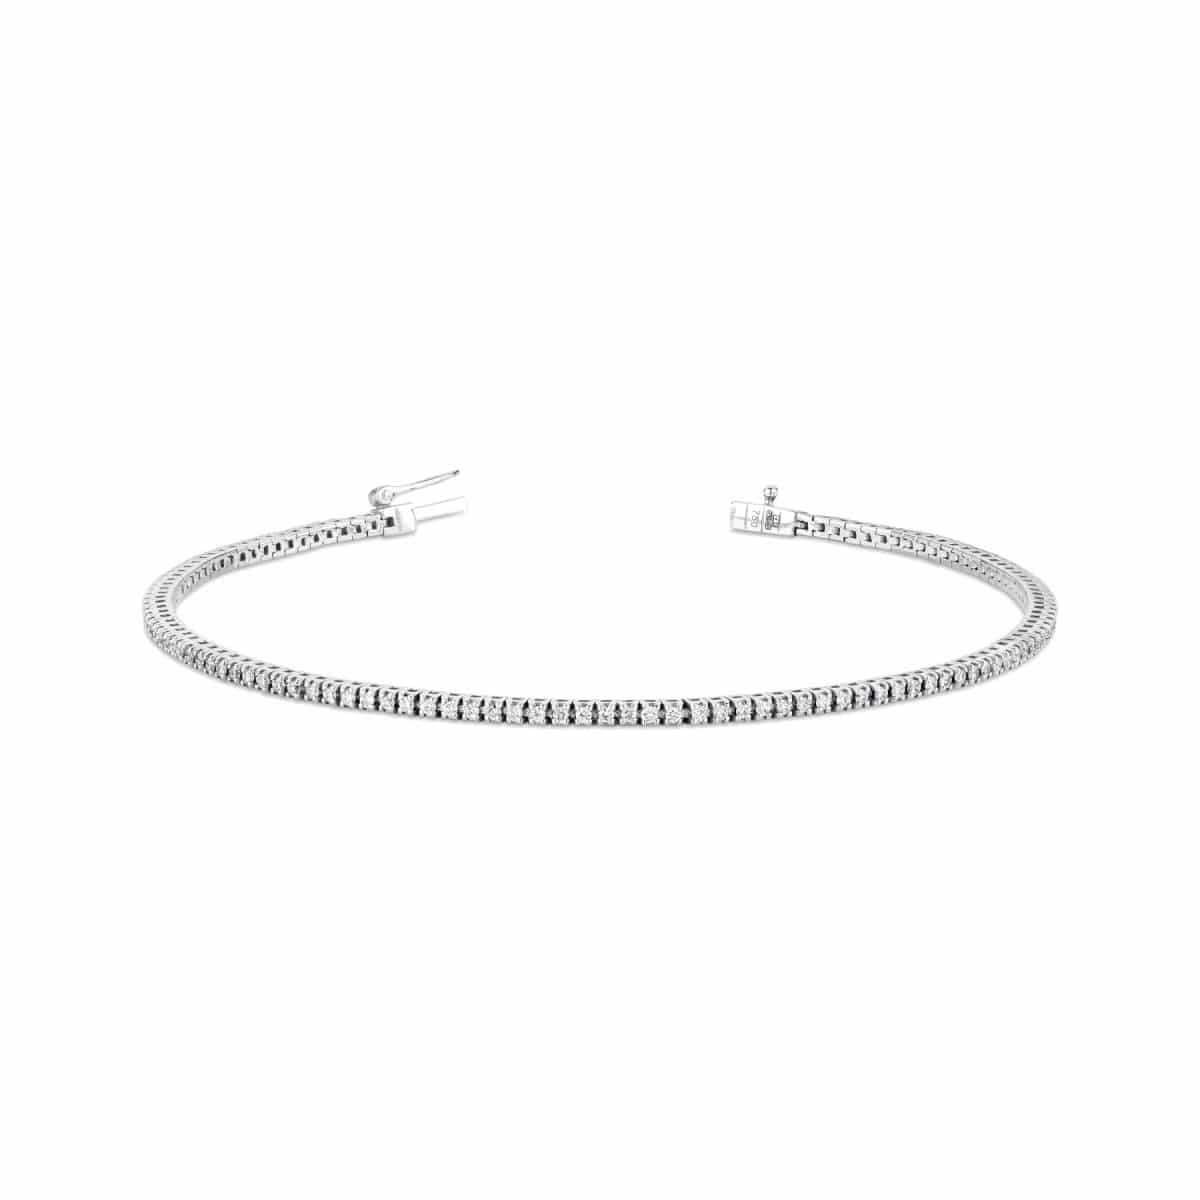 white gold diamond bracelet 0.6 ct